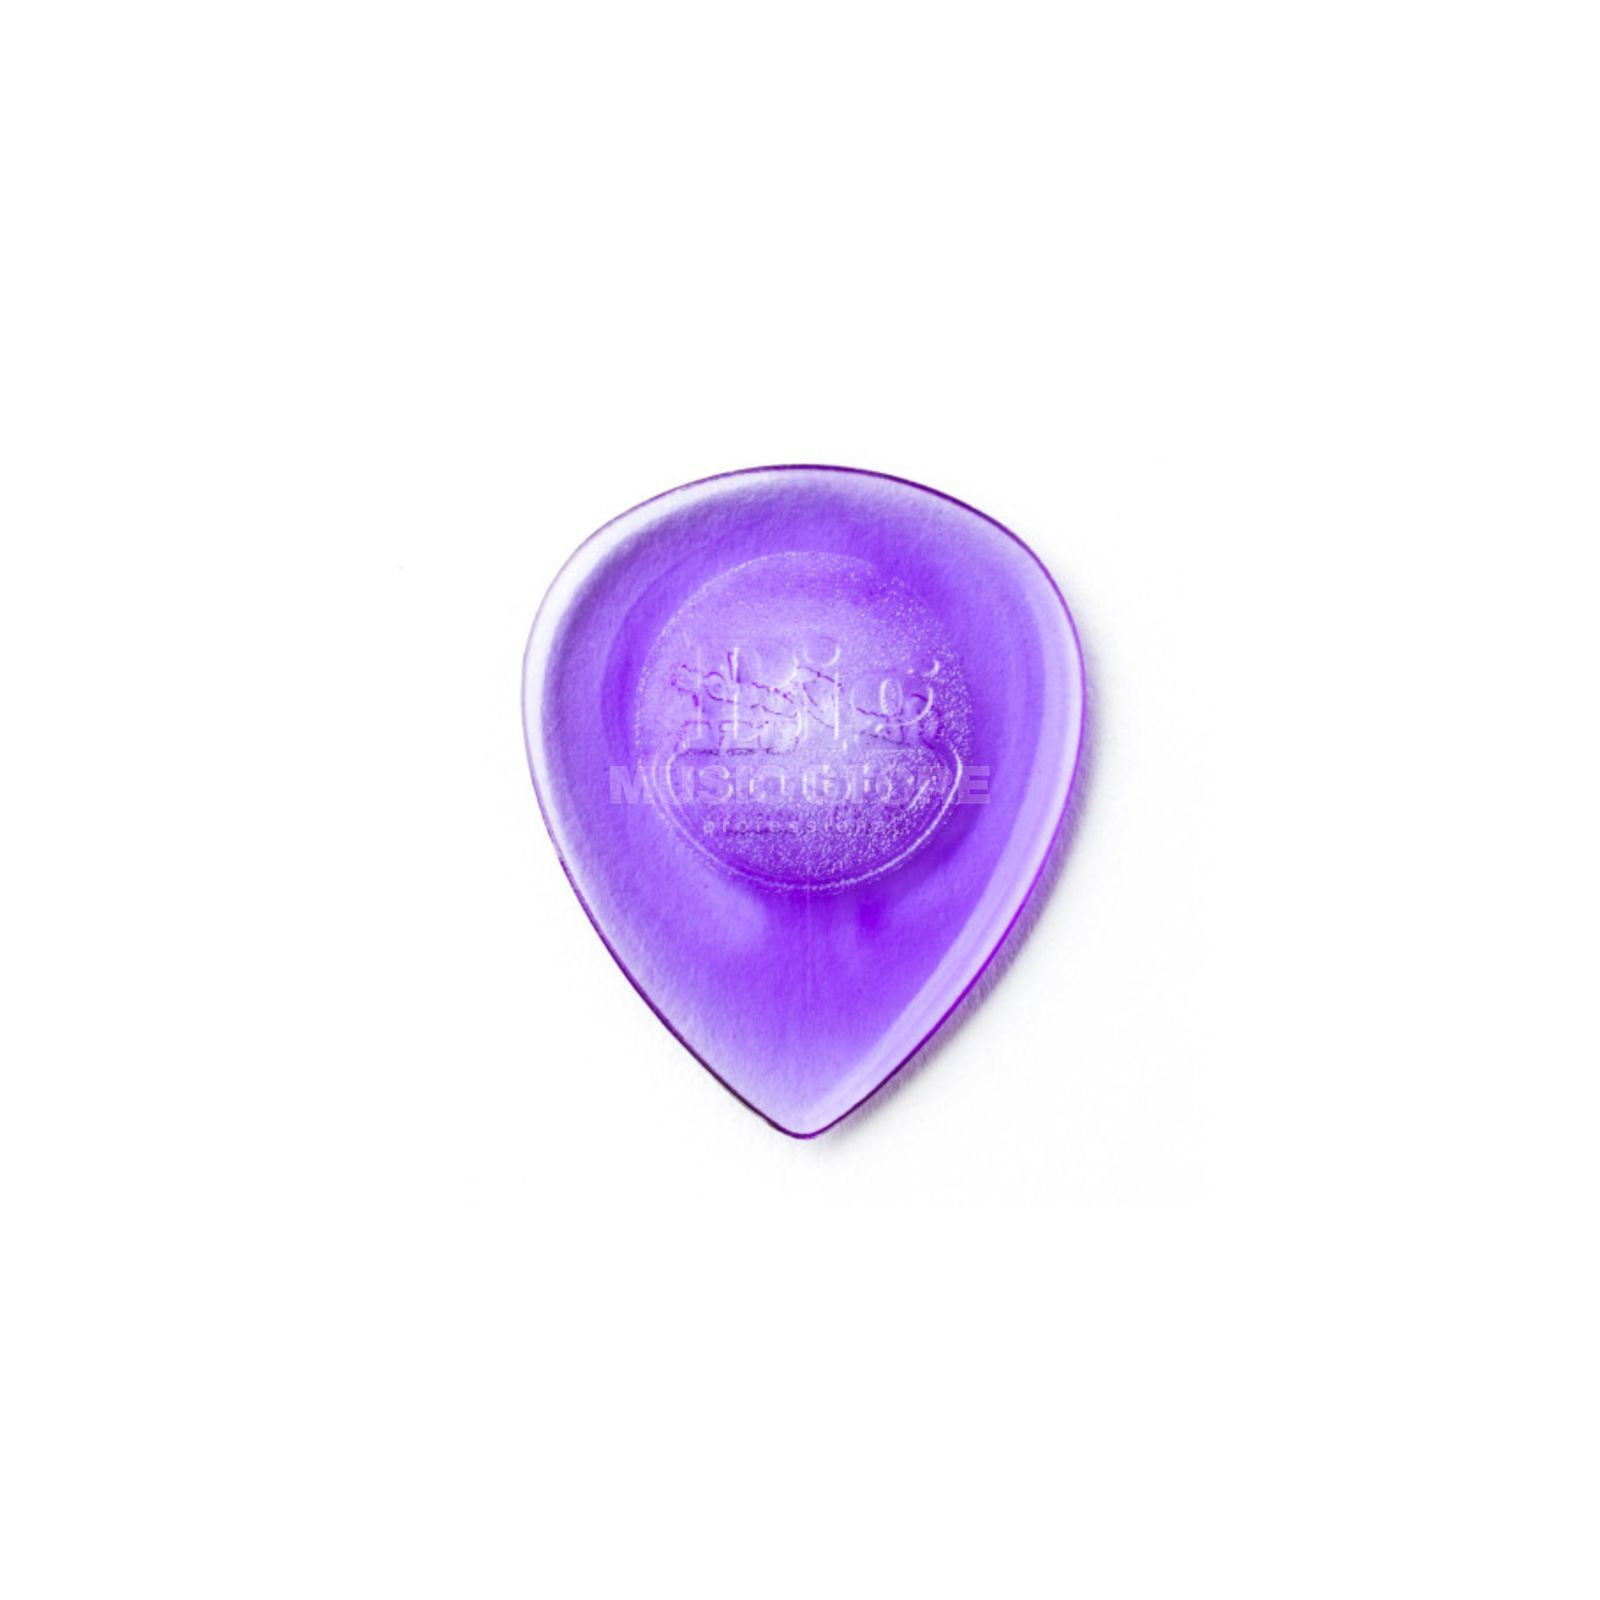 Dunlop Plektrum Big Stubby 2,00 6er-Set Bright Purple Produktbild